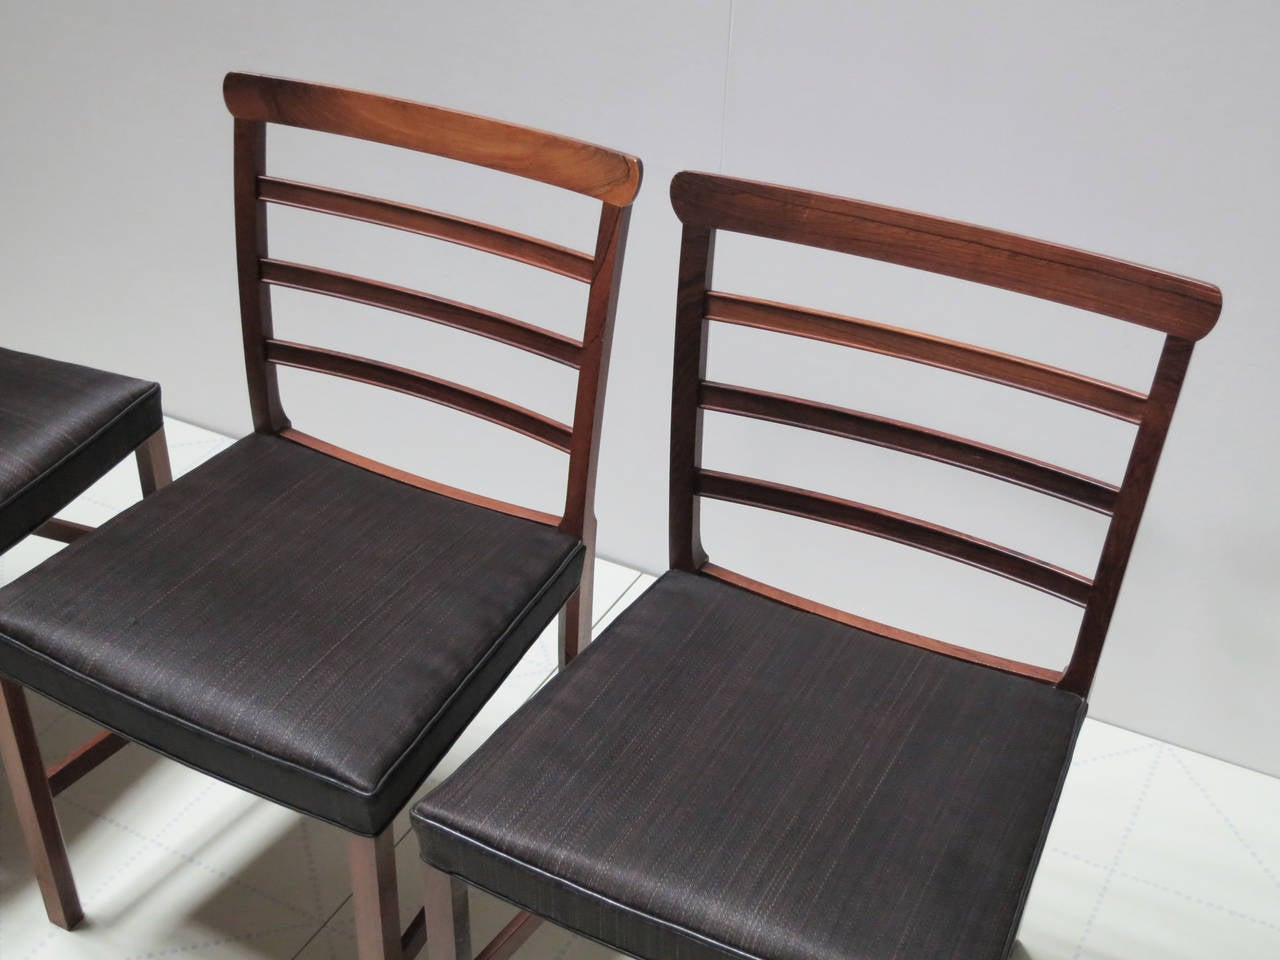 Set of Eight Brazilian Rosewood and Horsehair Dining Chairs by Ole Wanscher. This set of eight ladder back dining chairs was designed and made in the 1940s by Ole Wanscher. They retain their original brownish-black horsehair seats with leather